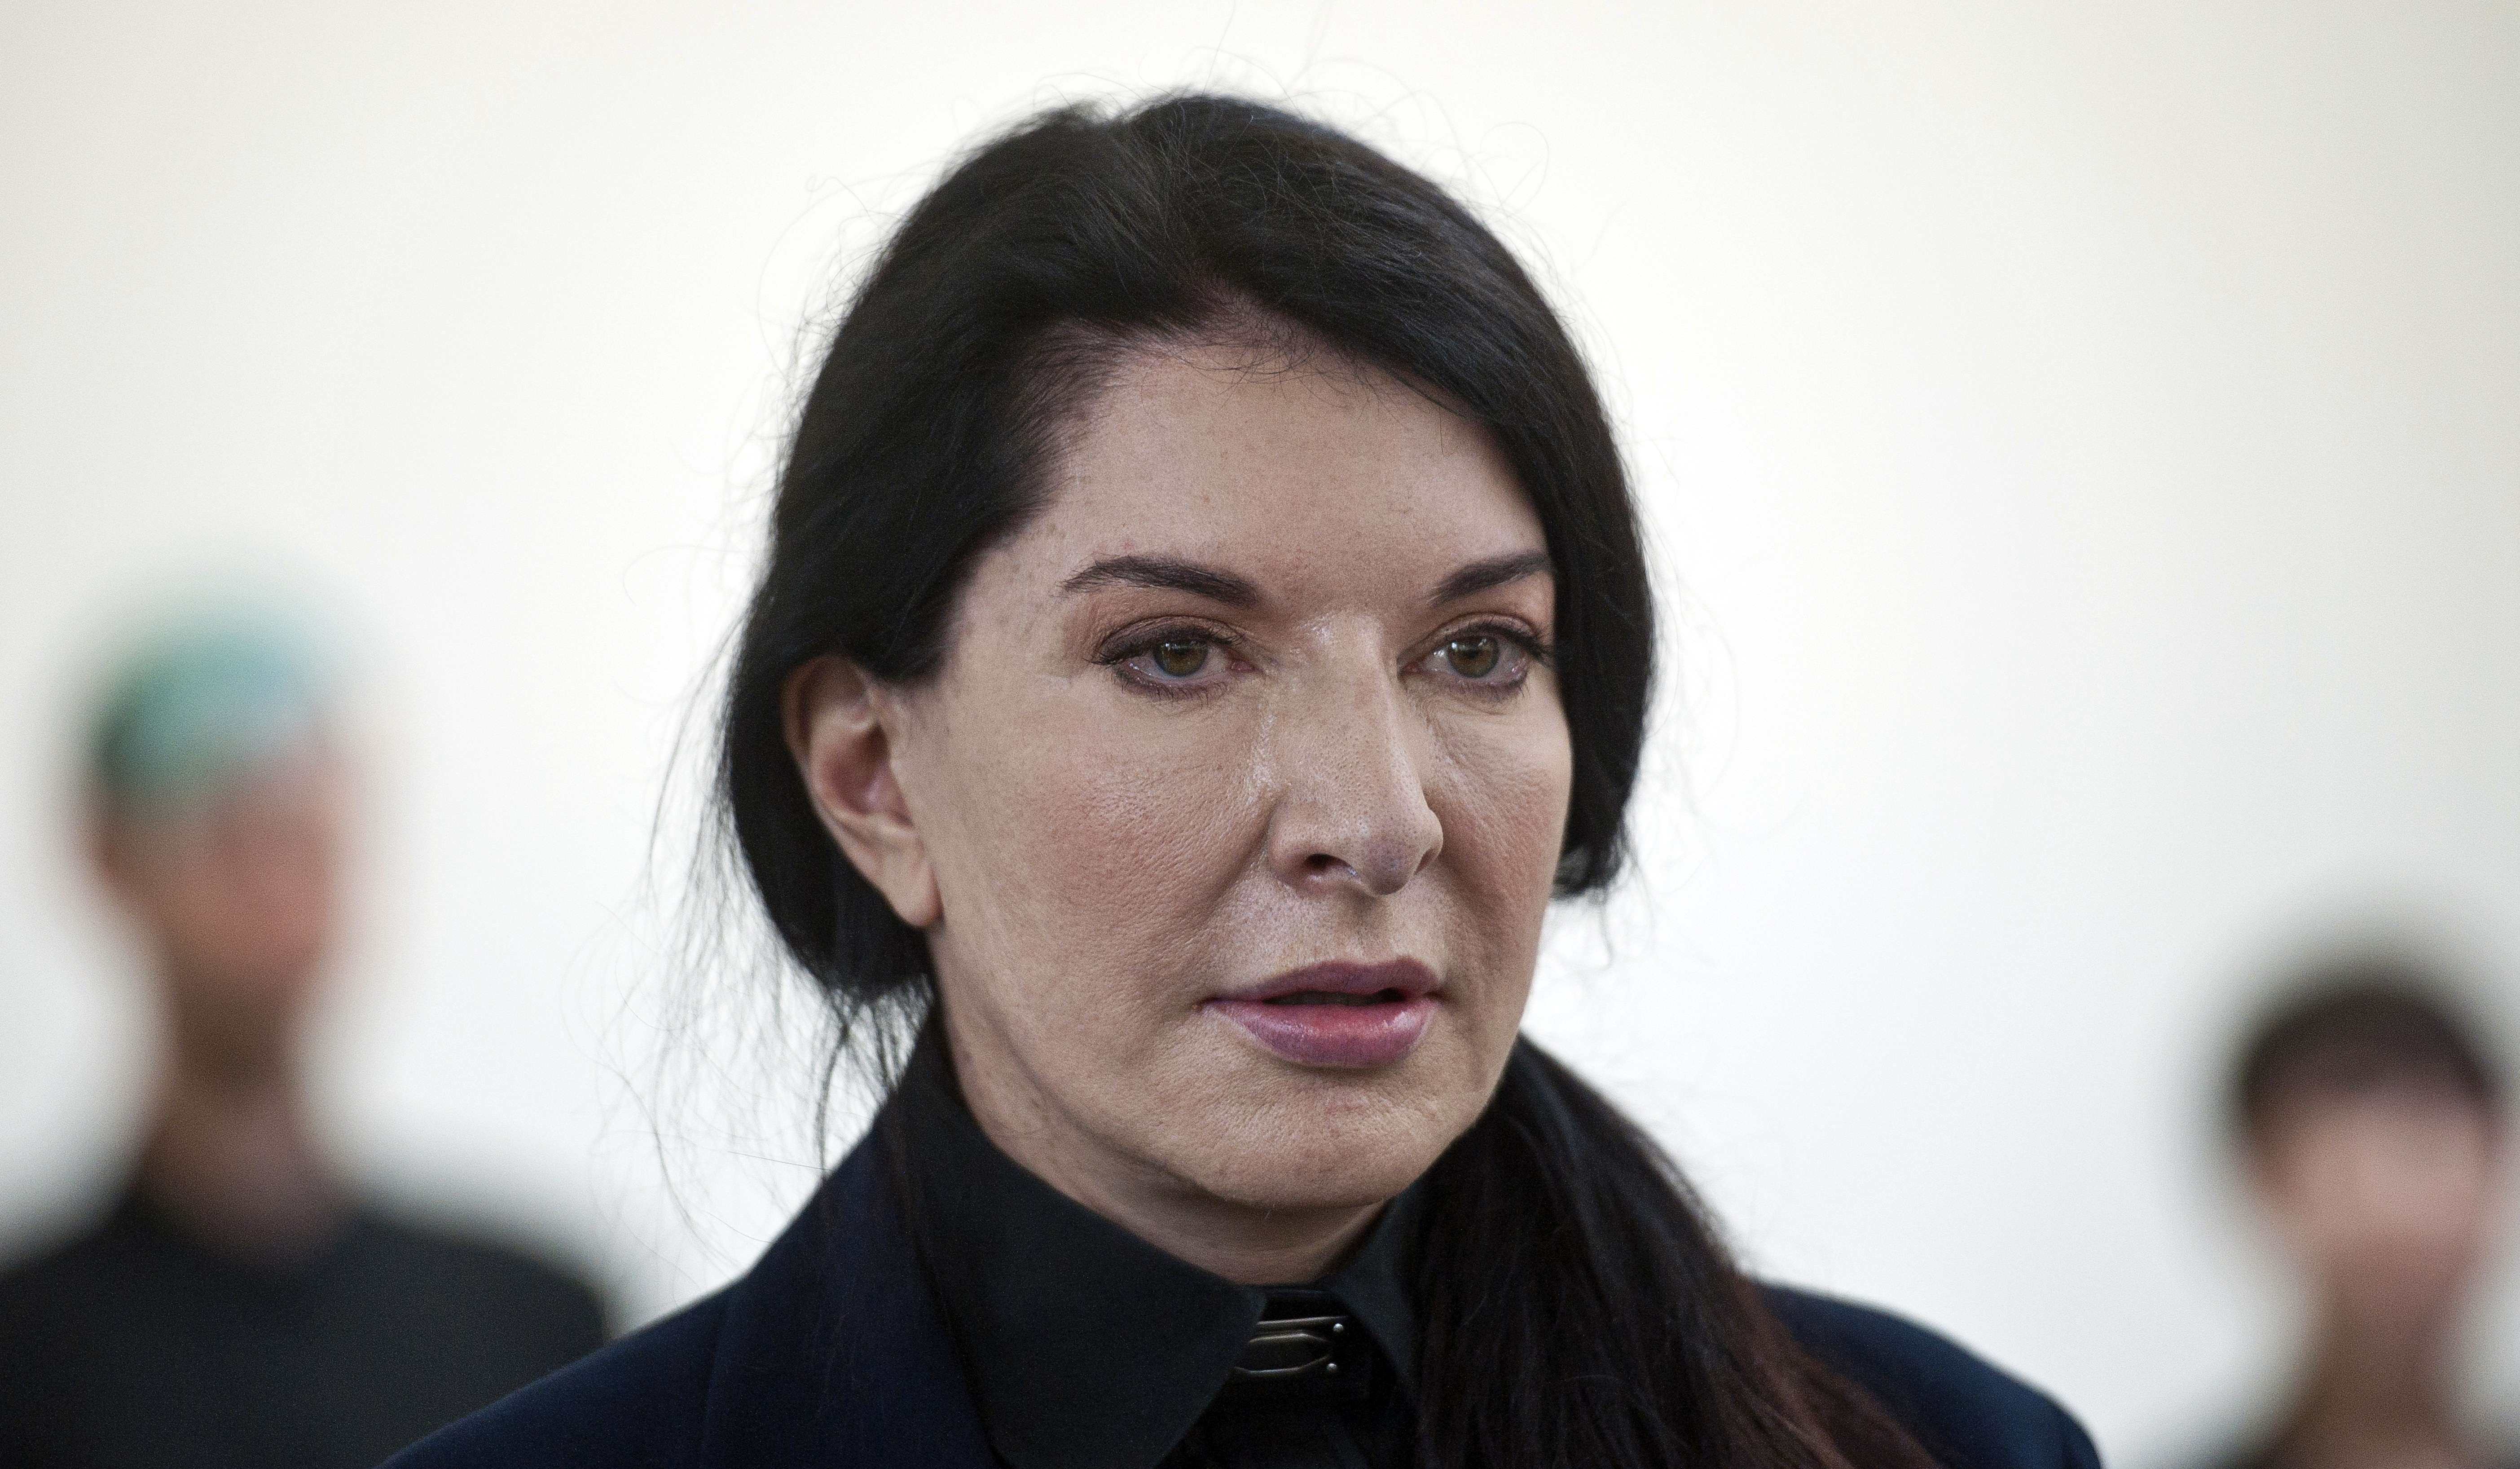 Serbian-born performance artist Marina Abramovic attends a press conference to announce her latest durational performance at the Serpentine Gallery in Hyde Park, London on June 9, 2014.